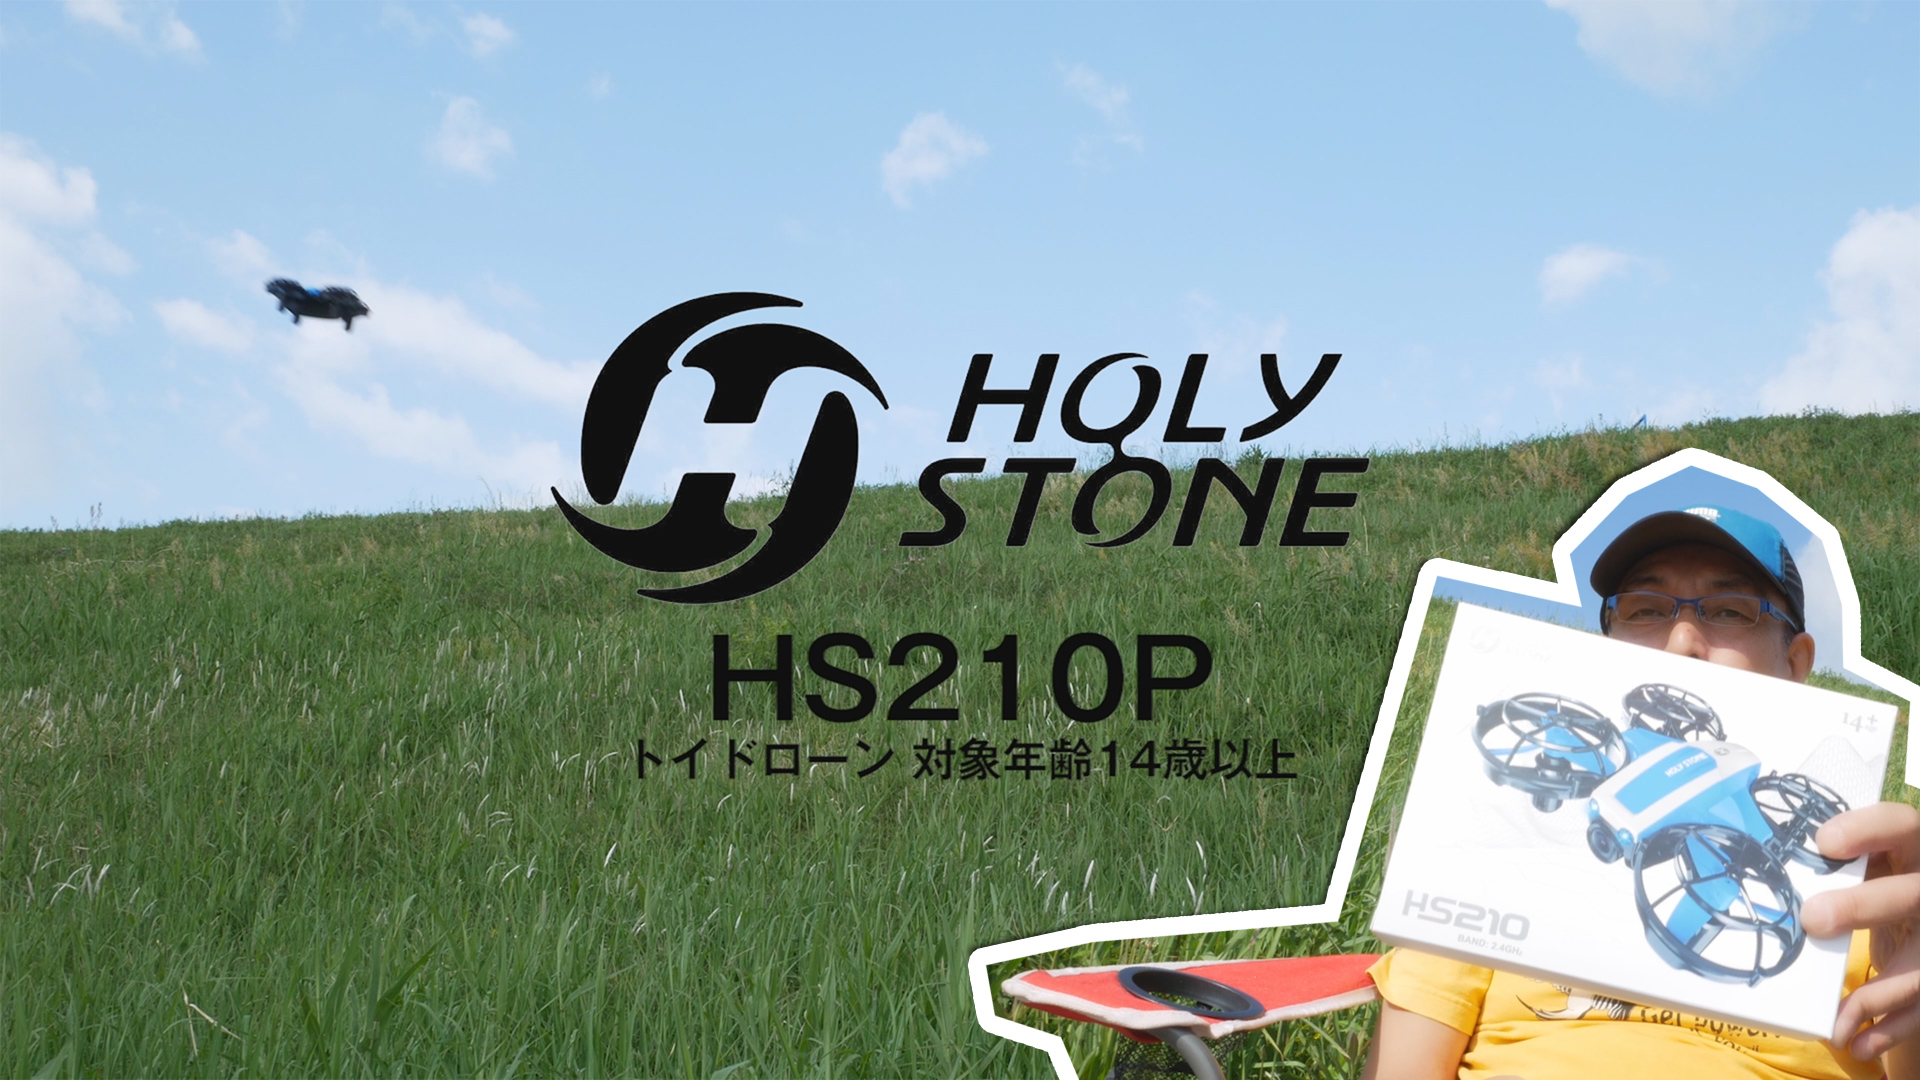 Holy Stone HS210P(トイドローン)は子供向けかと思ったら良い大人のオモチャだった!